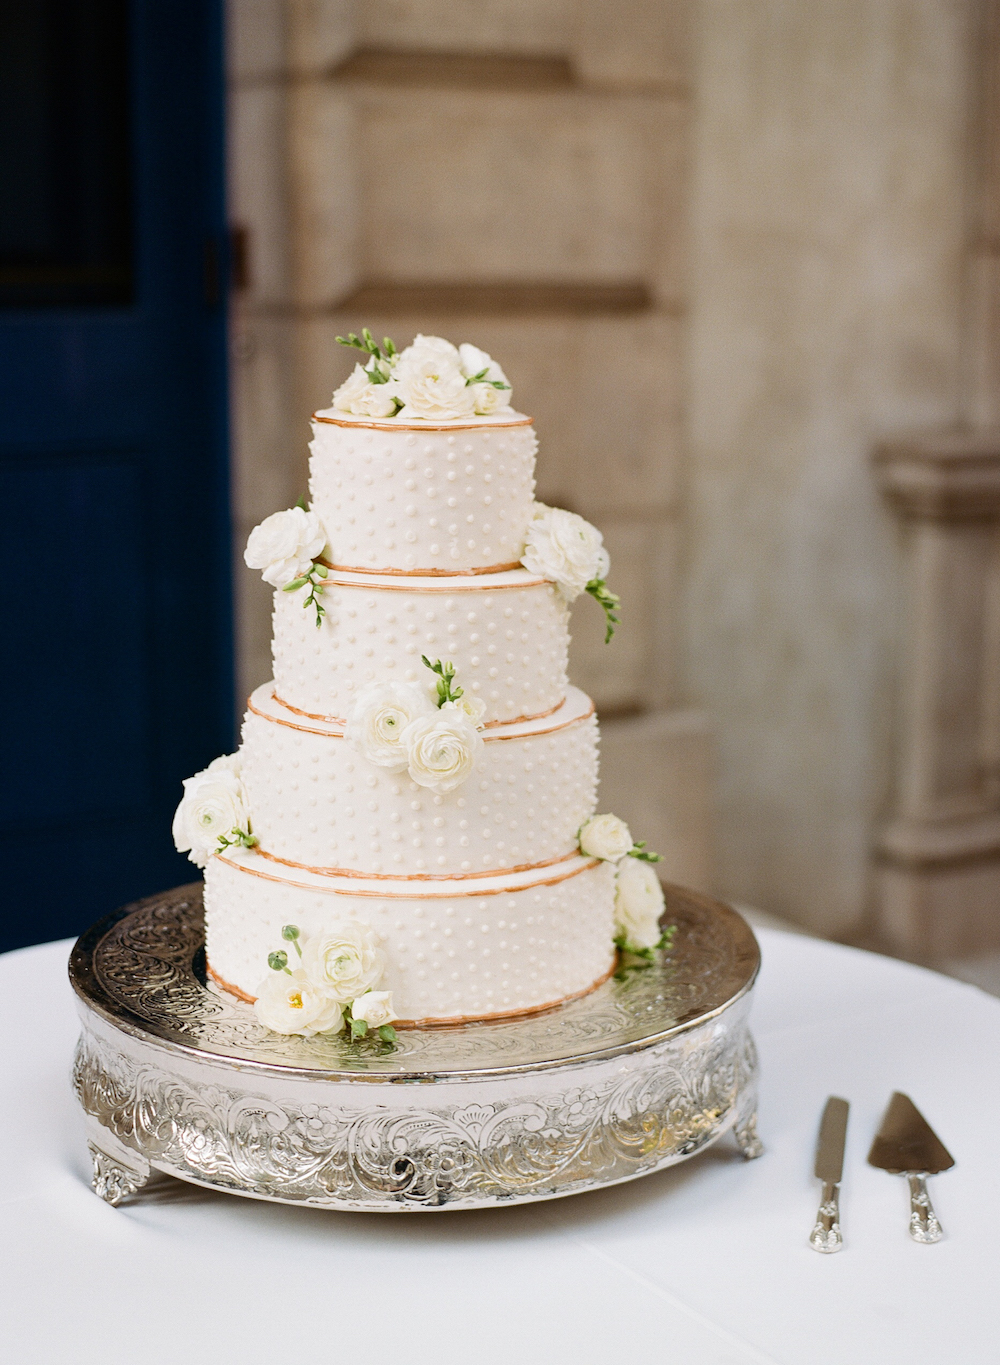 Classic White Wedding Cake with Polka Dots